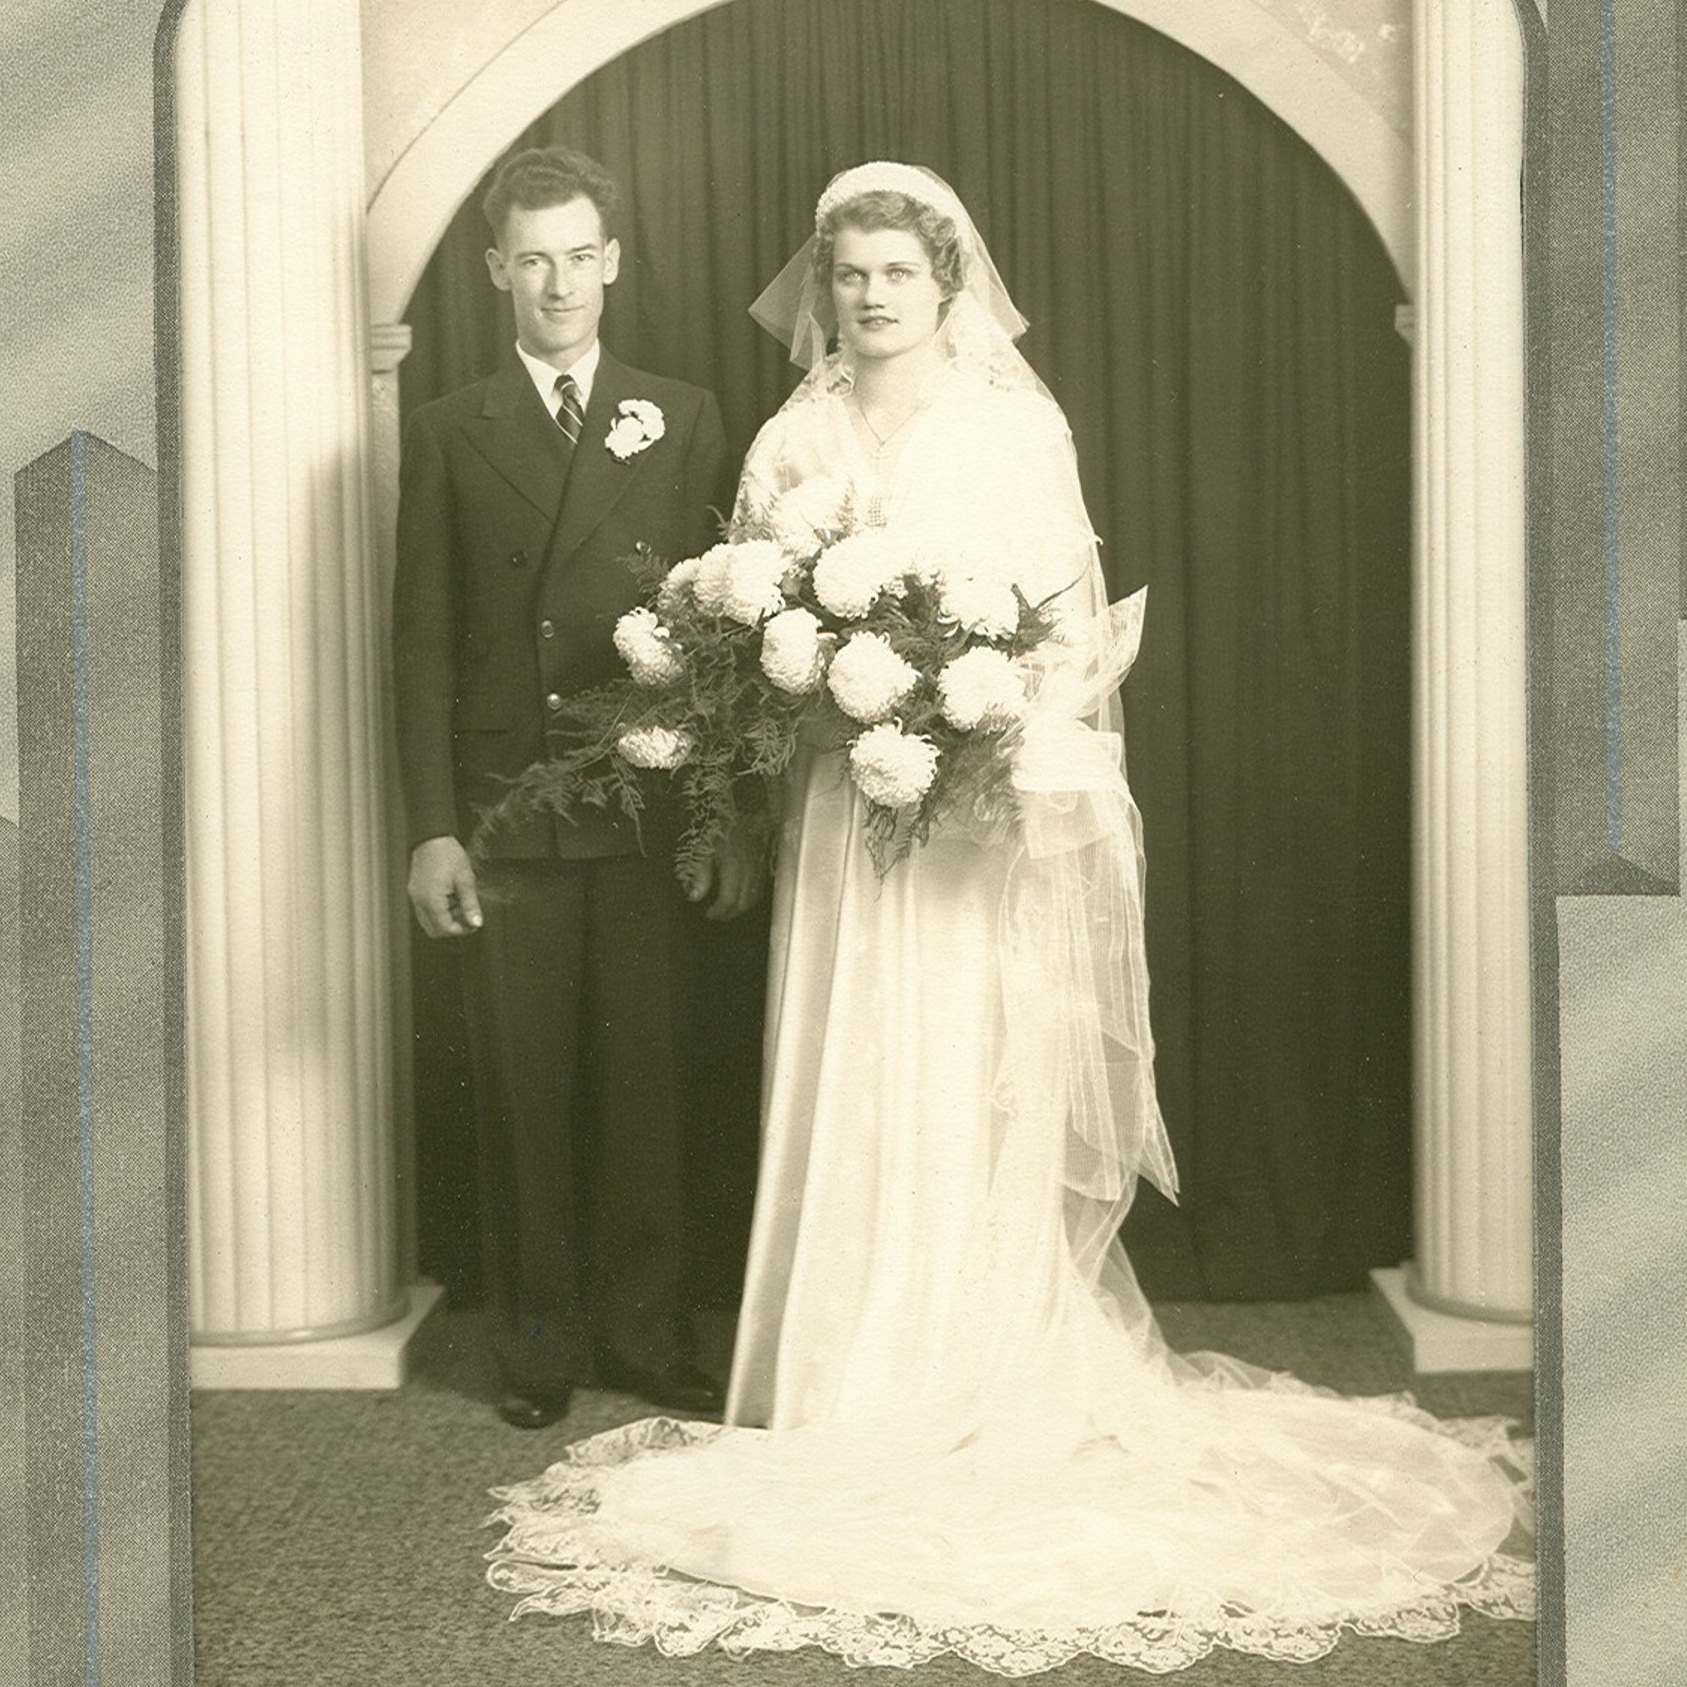 1938 - Roy and Laura (nee: Trott) were united in marriage in Hartford, Wisconsin.